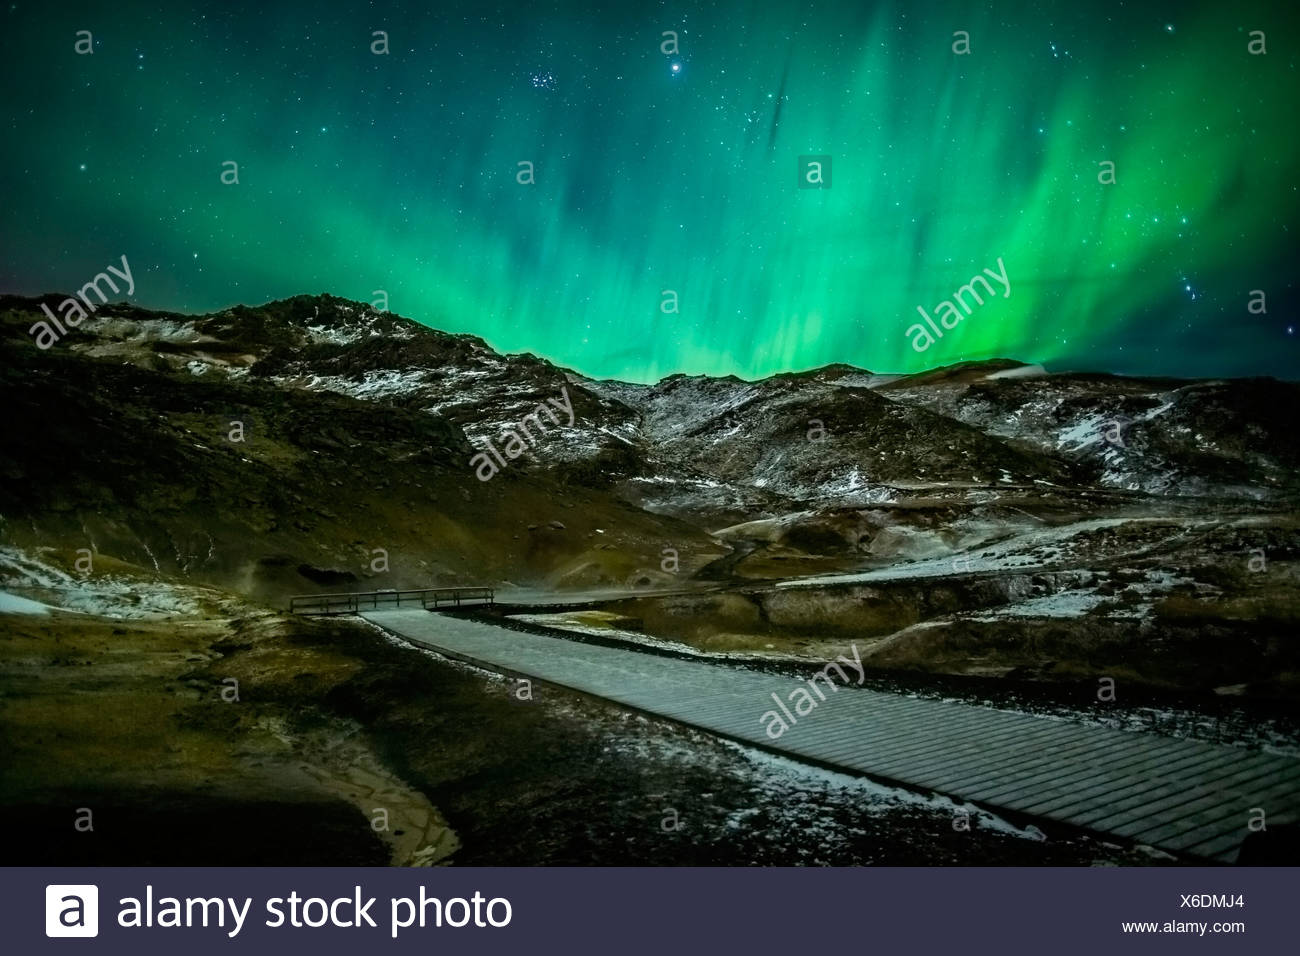 Aurora Borealis or Northern lights over geothermal area Krysuvik-Seltun, located on the Reykjanes Peninsula, Iceland - Stock Image